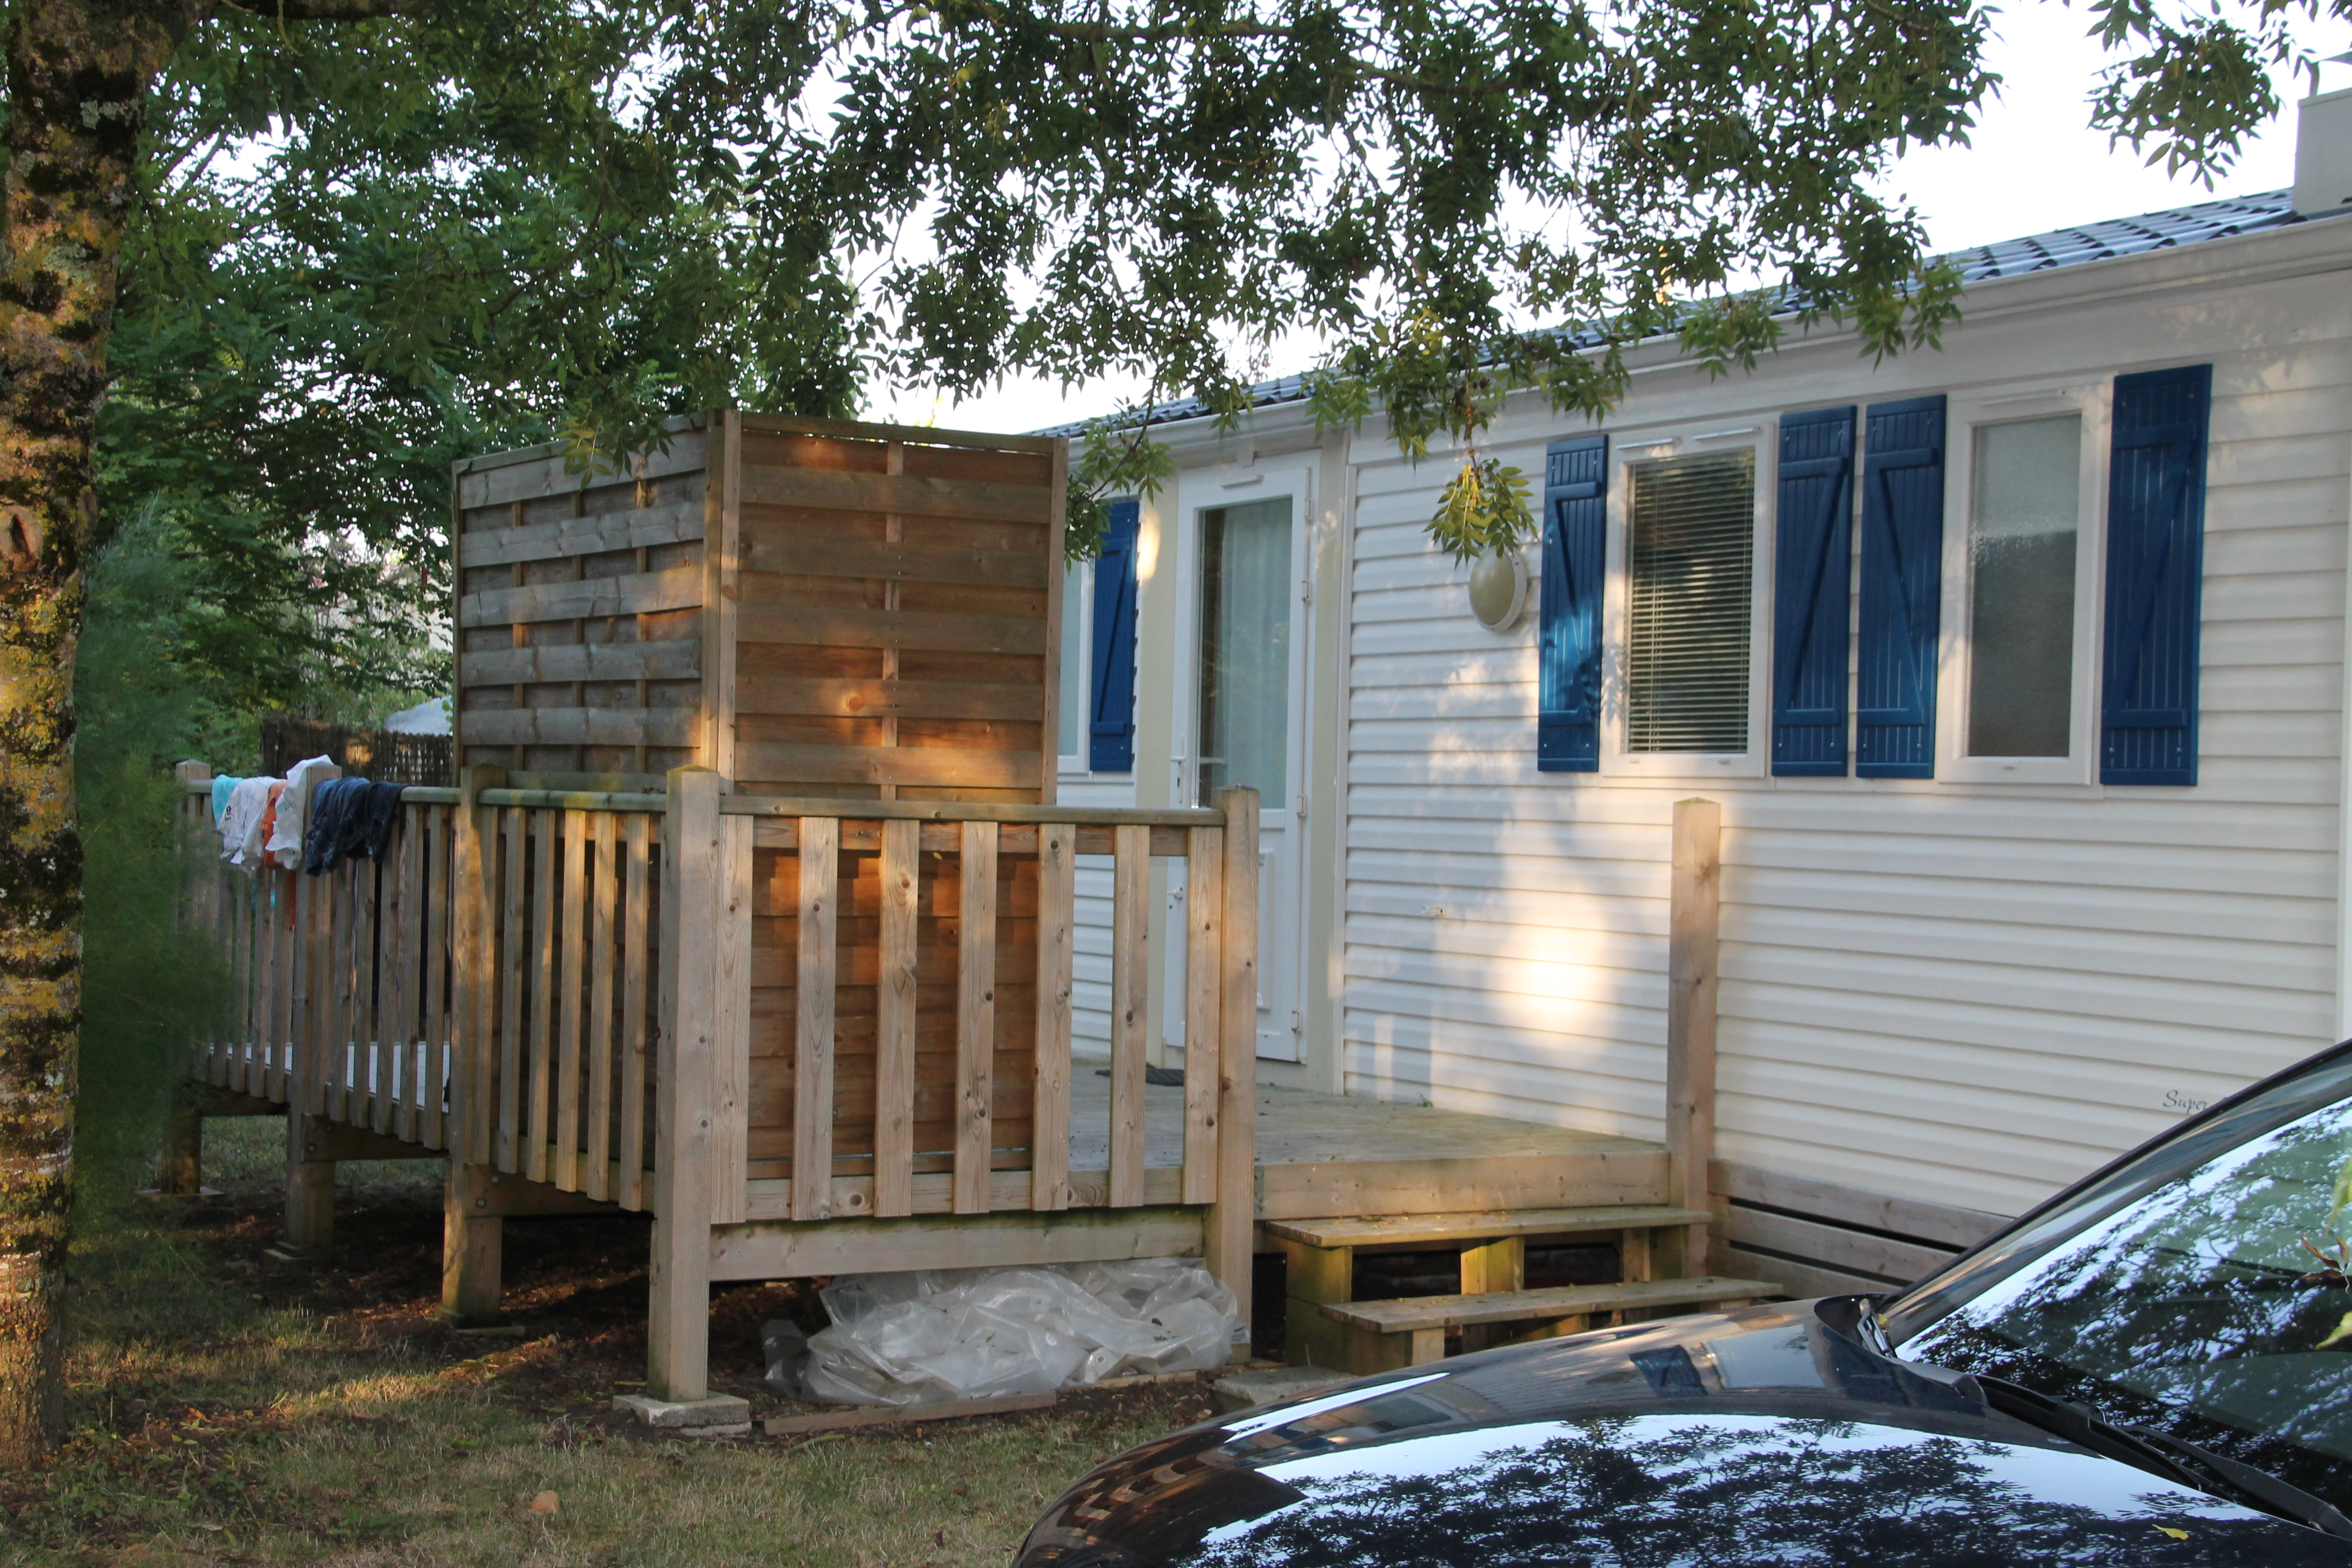 Camping-le-vieux-chene-nalliers-85-hpa (7)